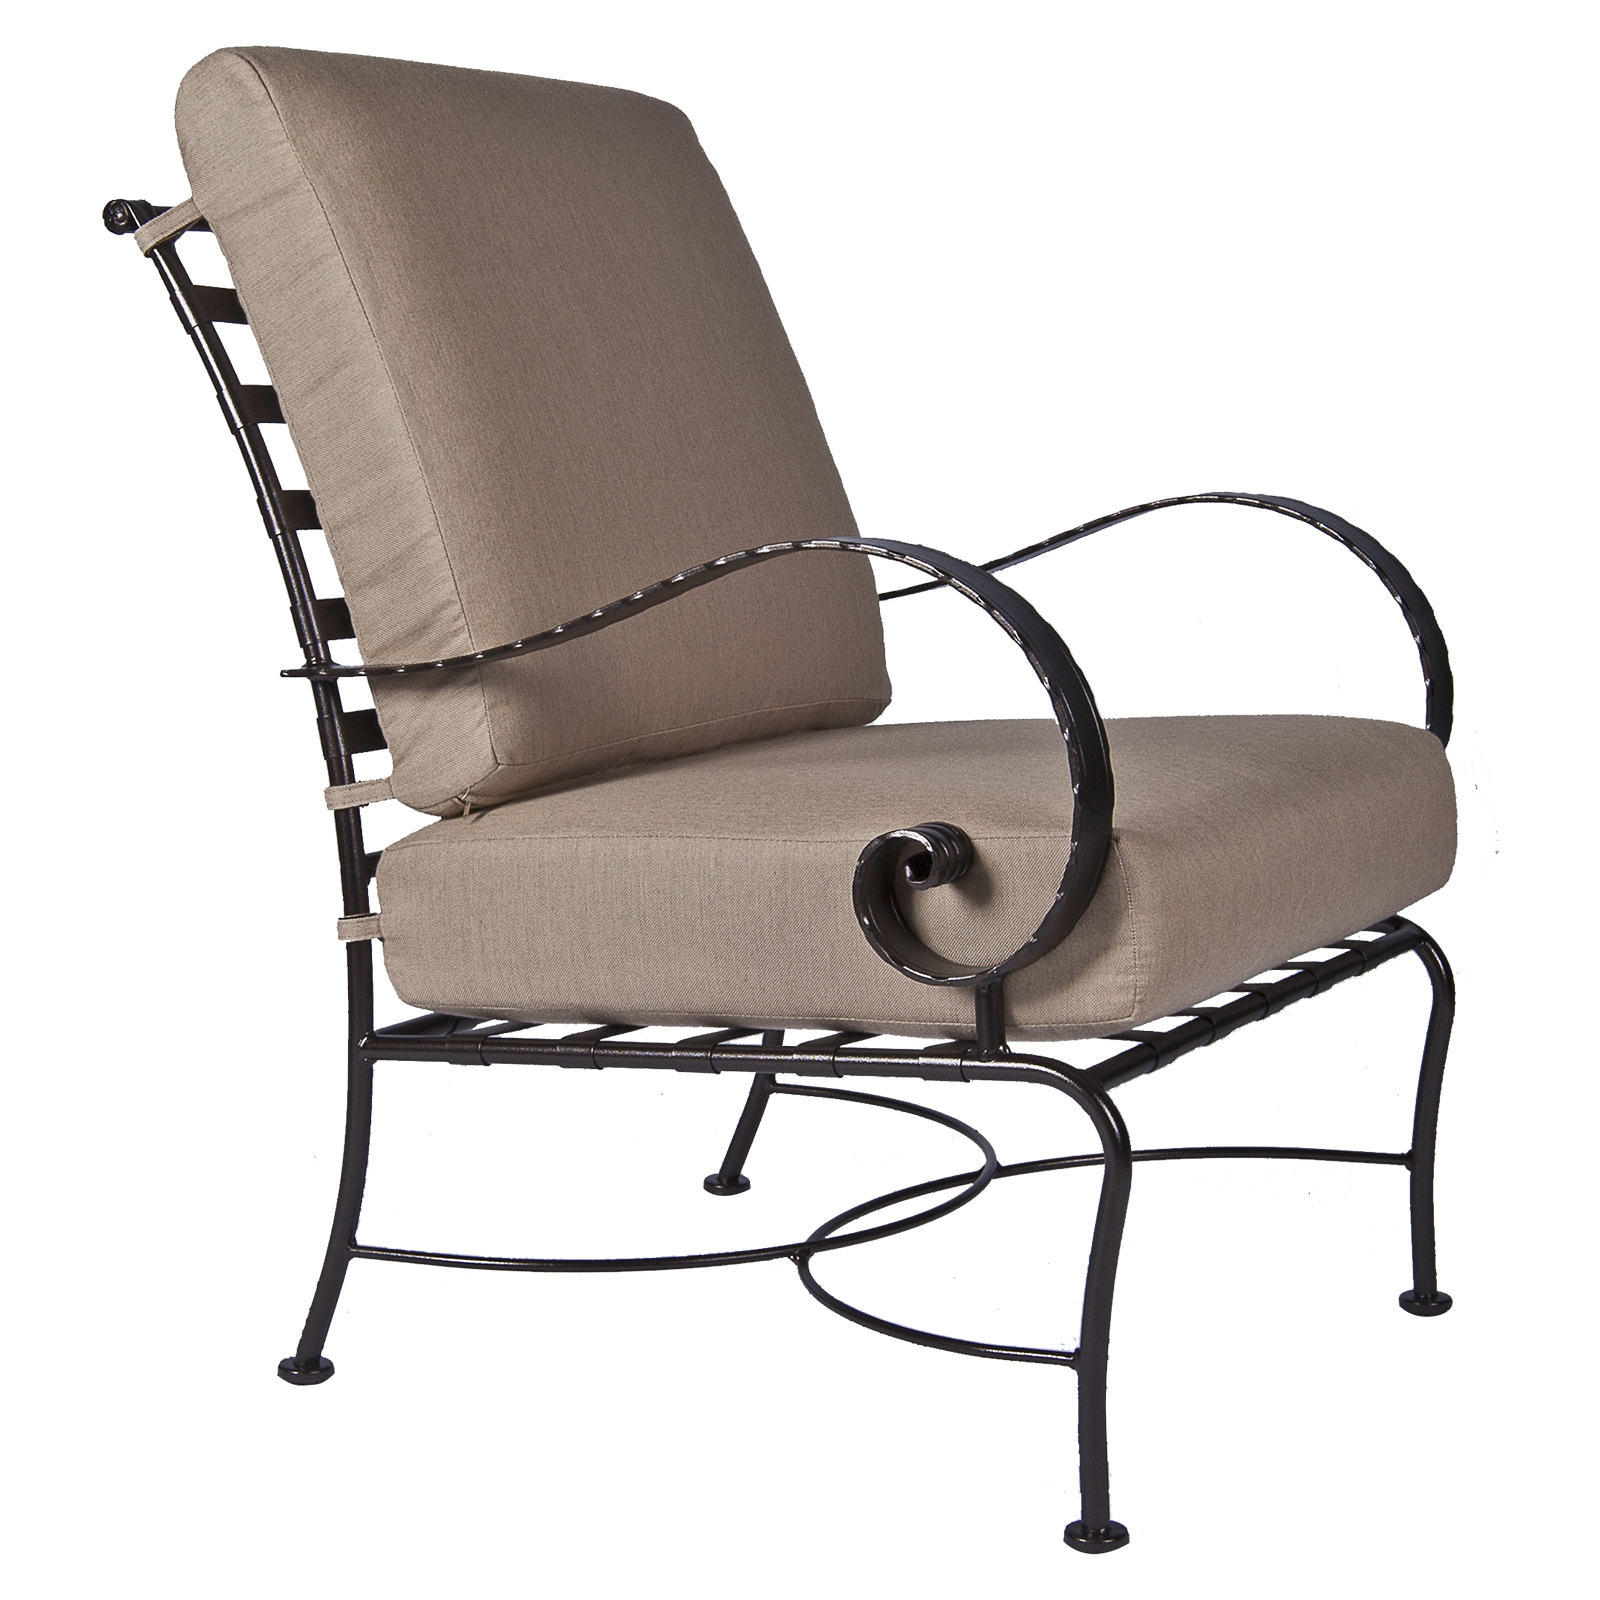 Lounge-Chair-956-CCW_Catalog_GR35_1600-Classico-W-OW-Lee